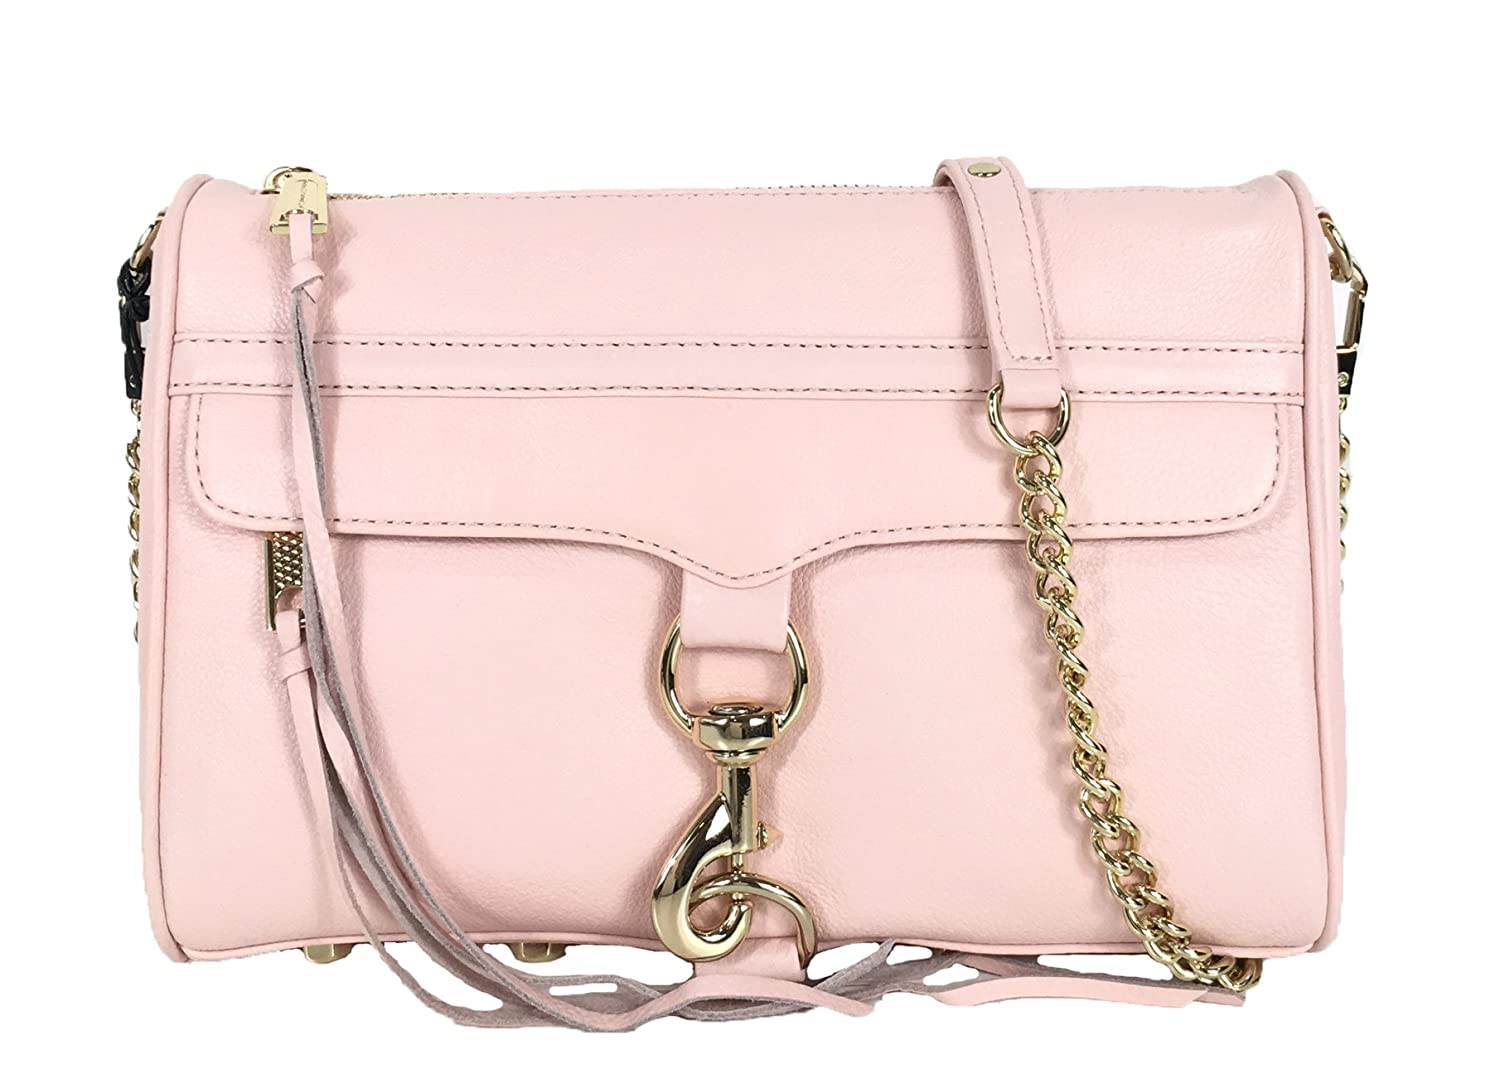 6d85986e953 Amazon.com: Rebecca Minkoff MAC Leather Clutch Crossbody Bag, Quartz ...